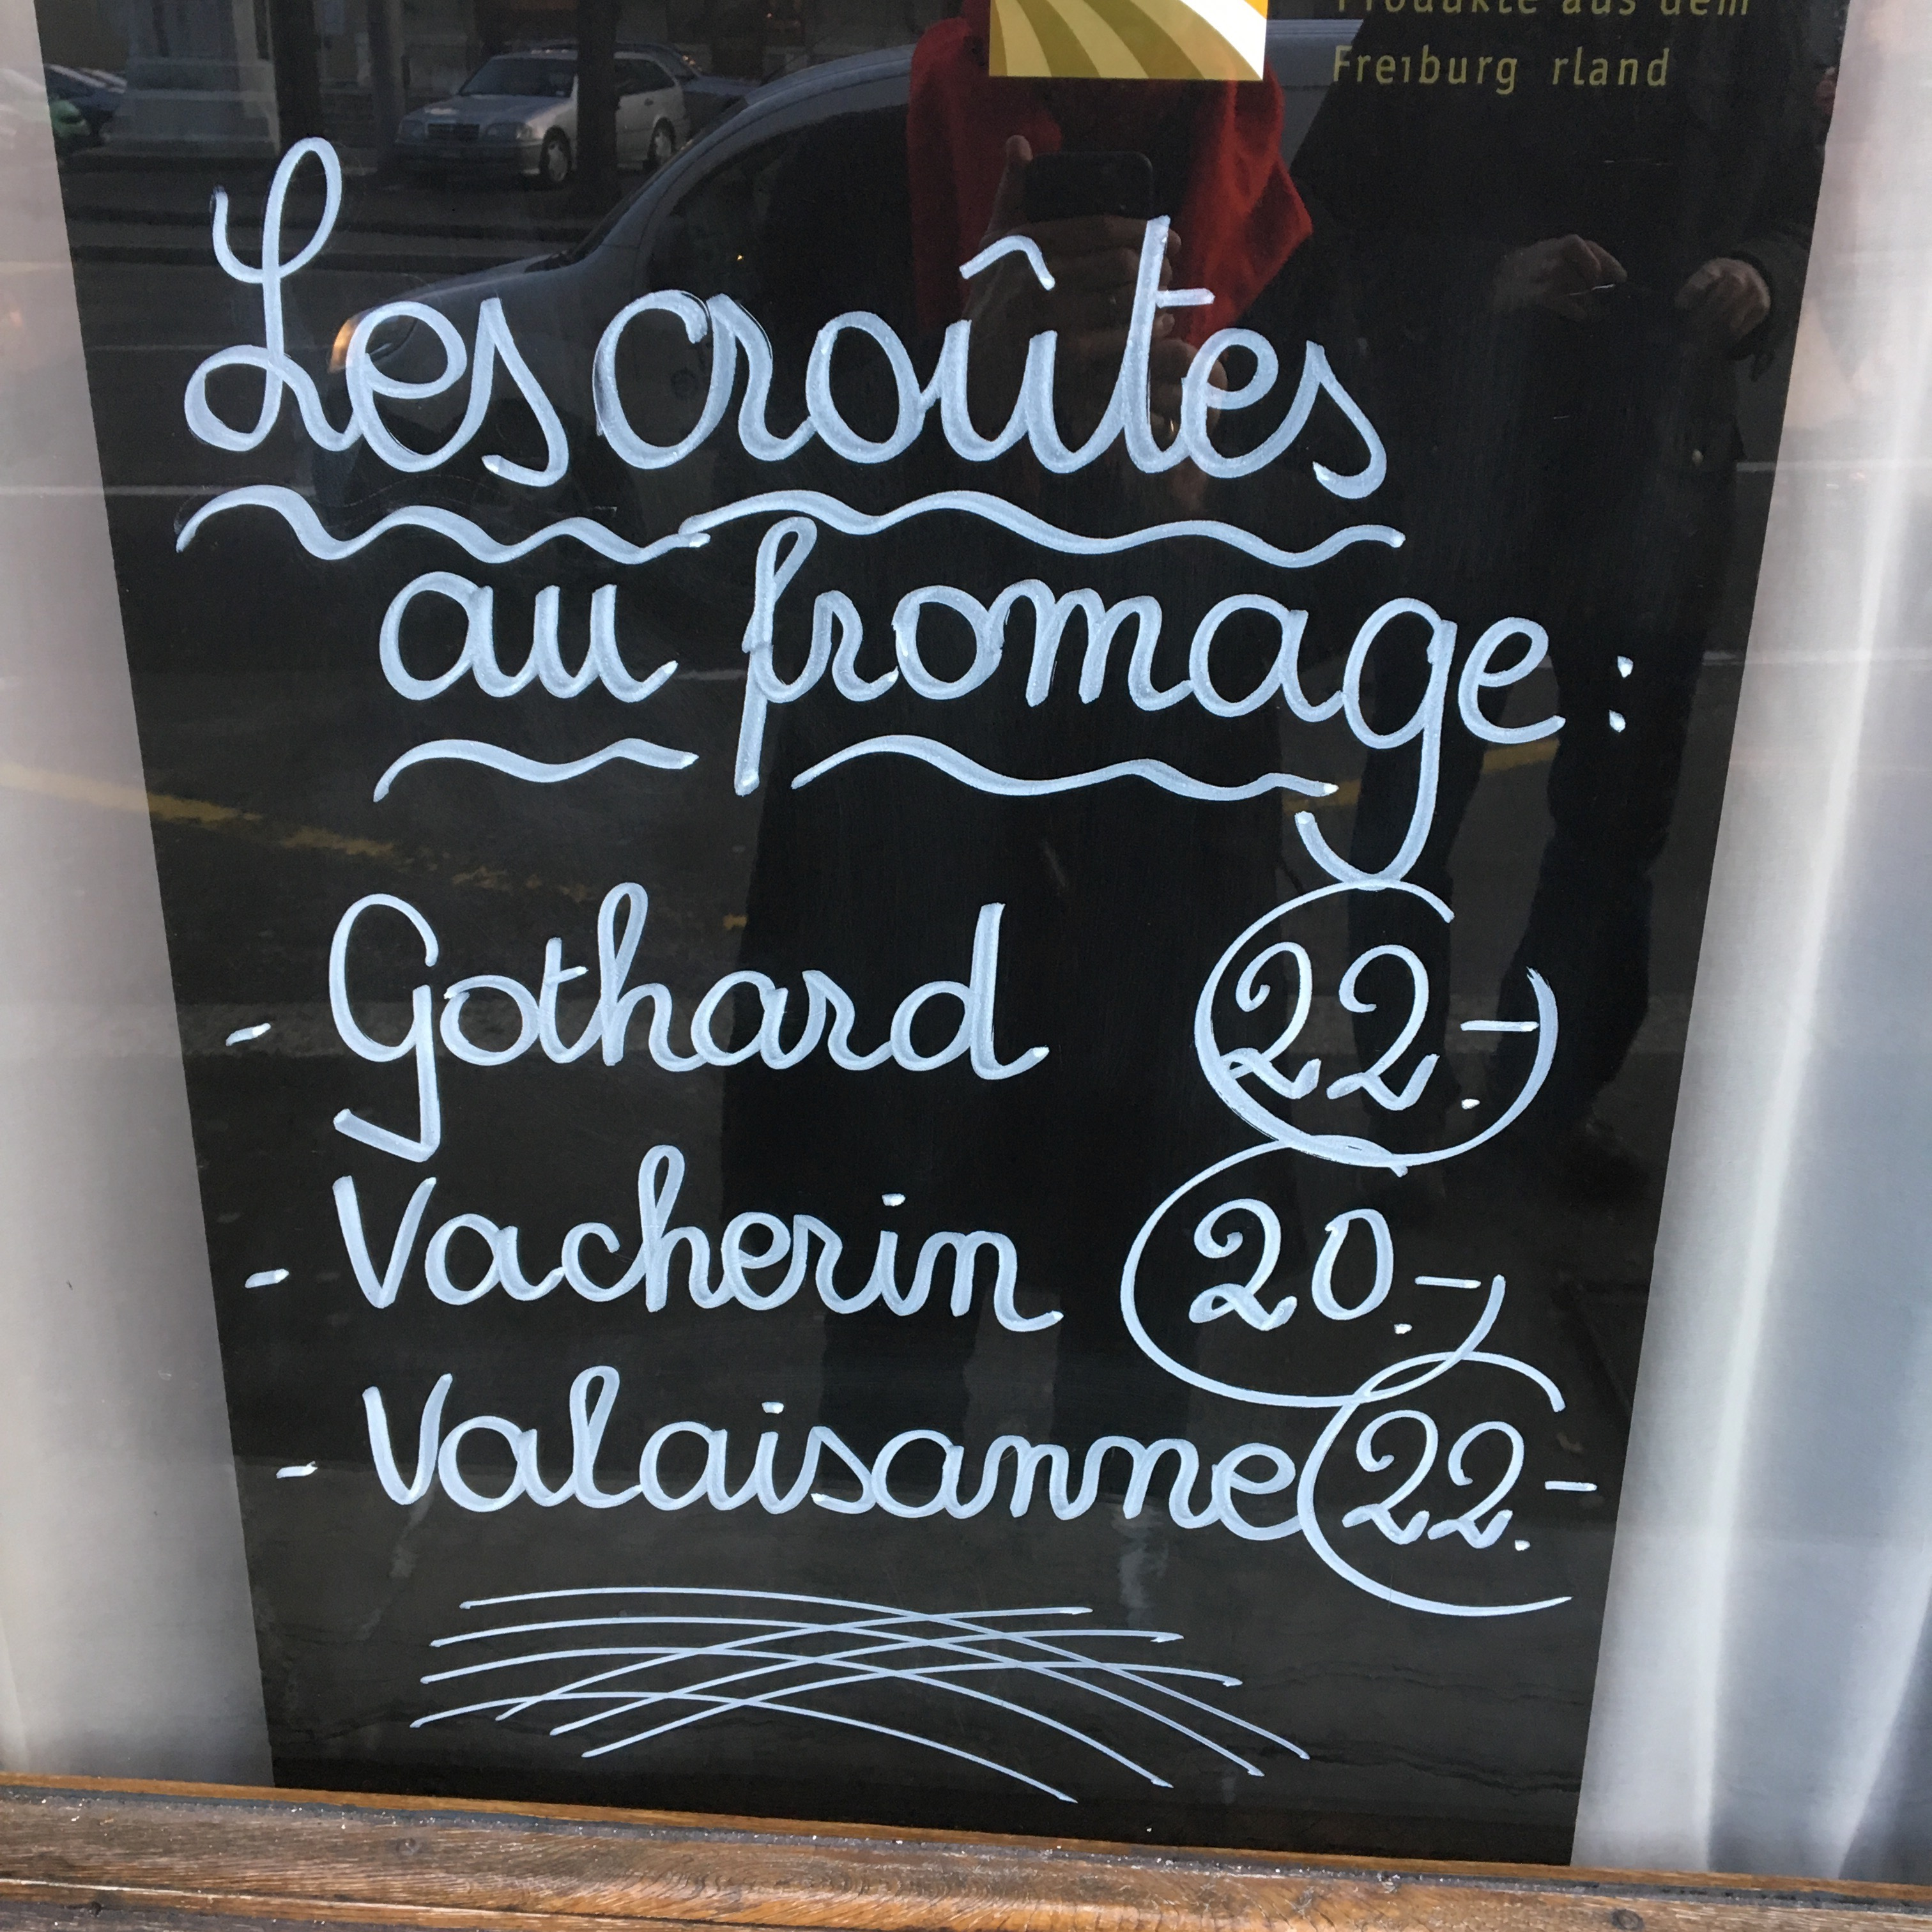 """Croutes au fromage"" sign - Gamesforlanguage.com"